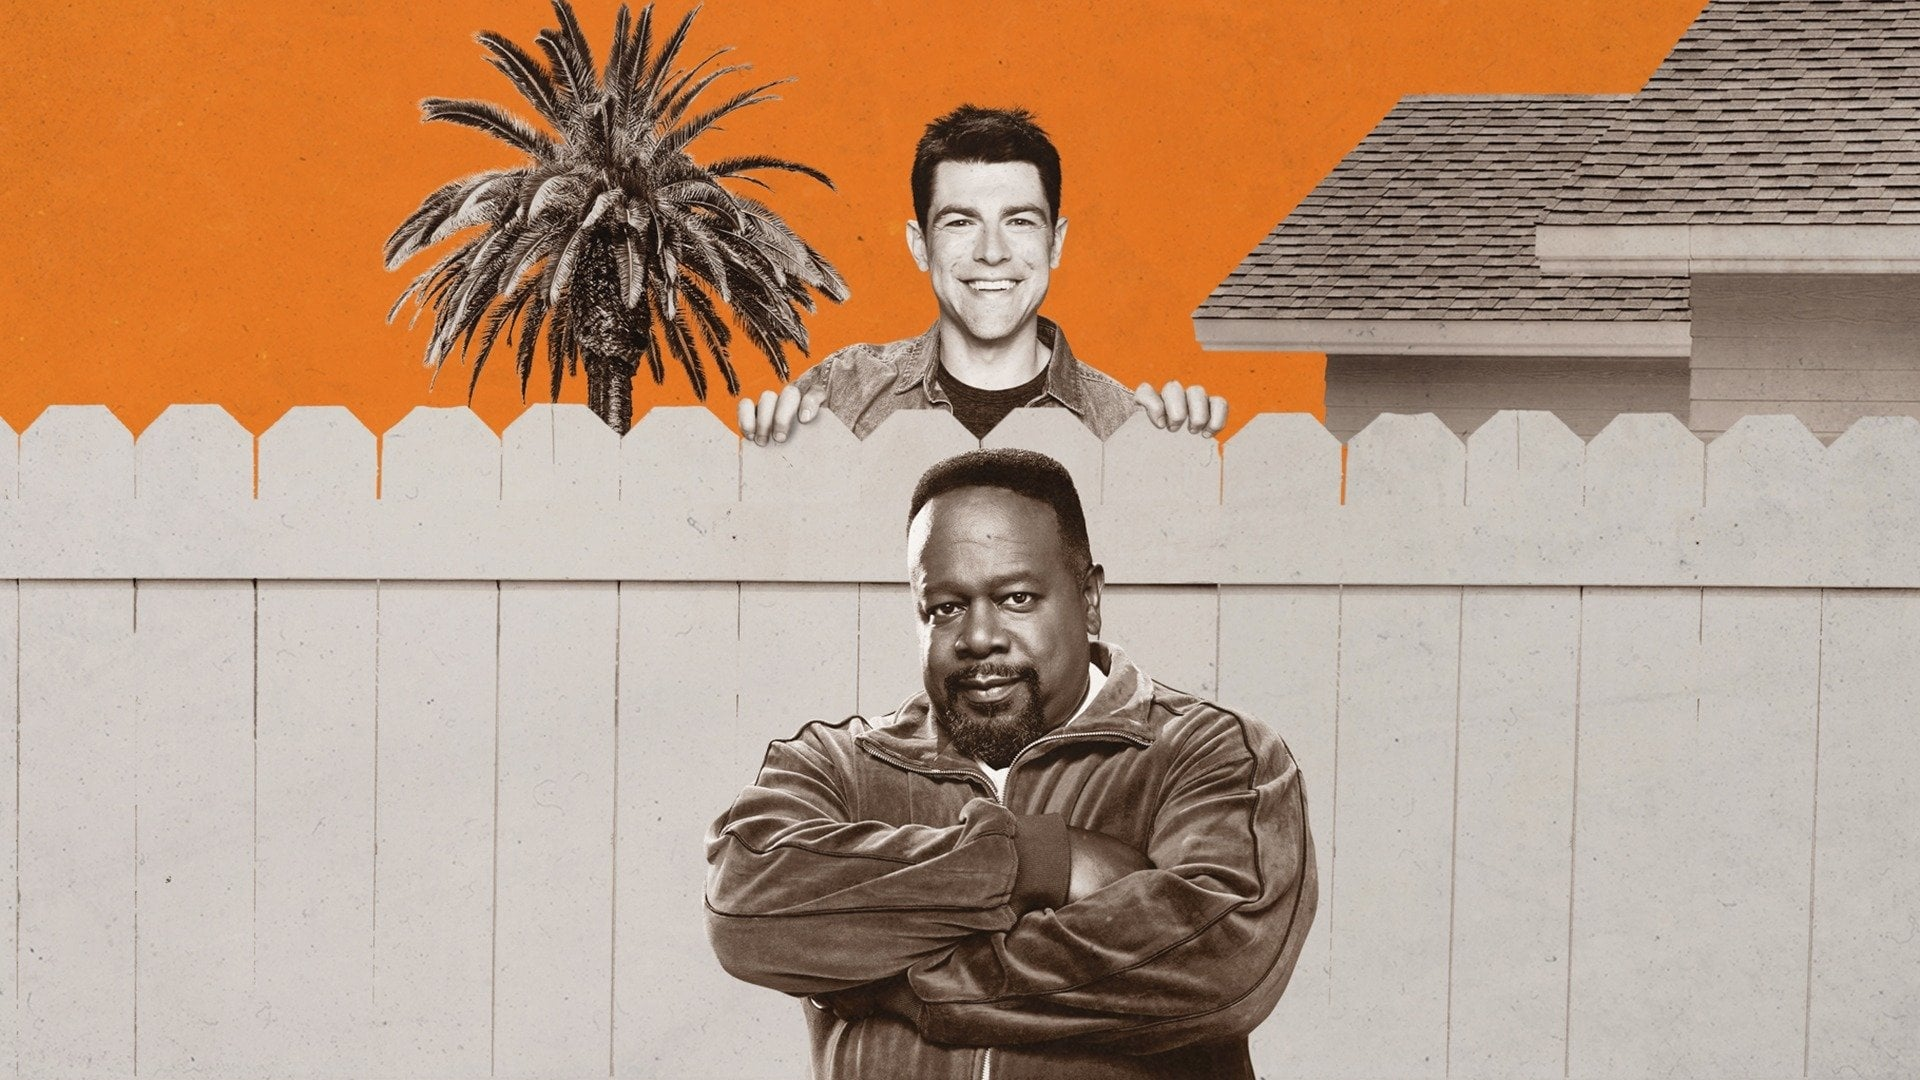 The Neighborhood Season 3 Episode 10